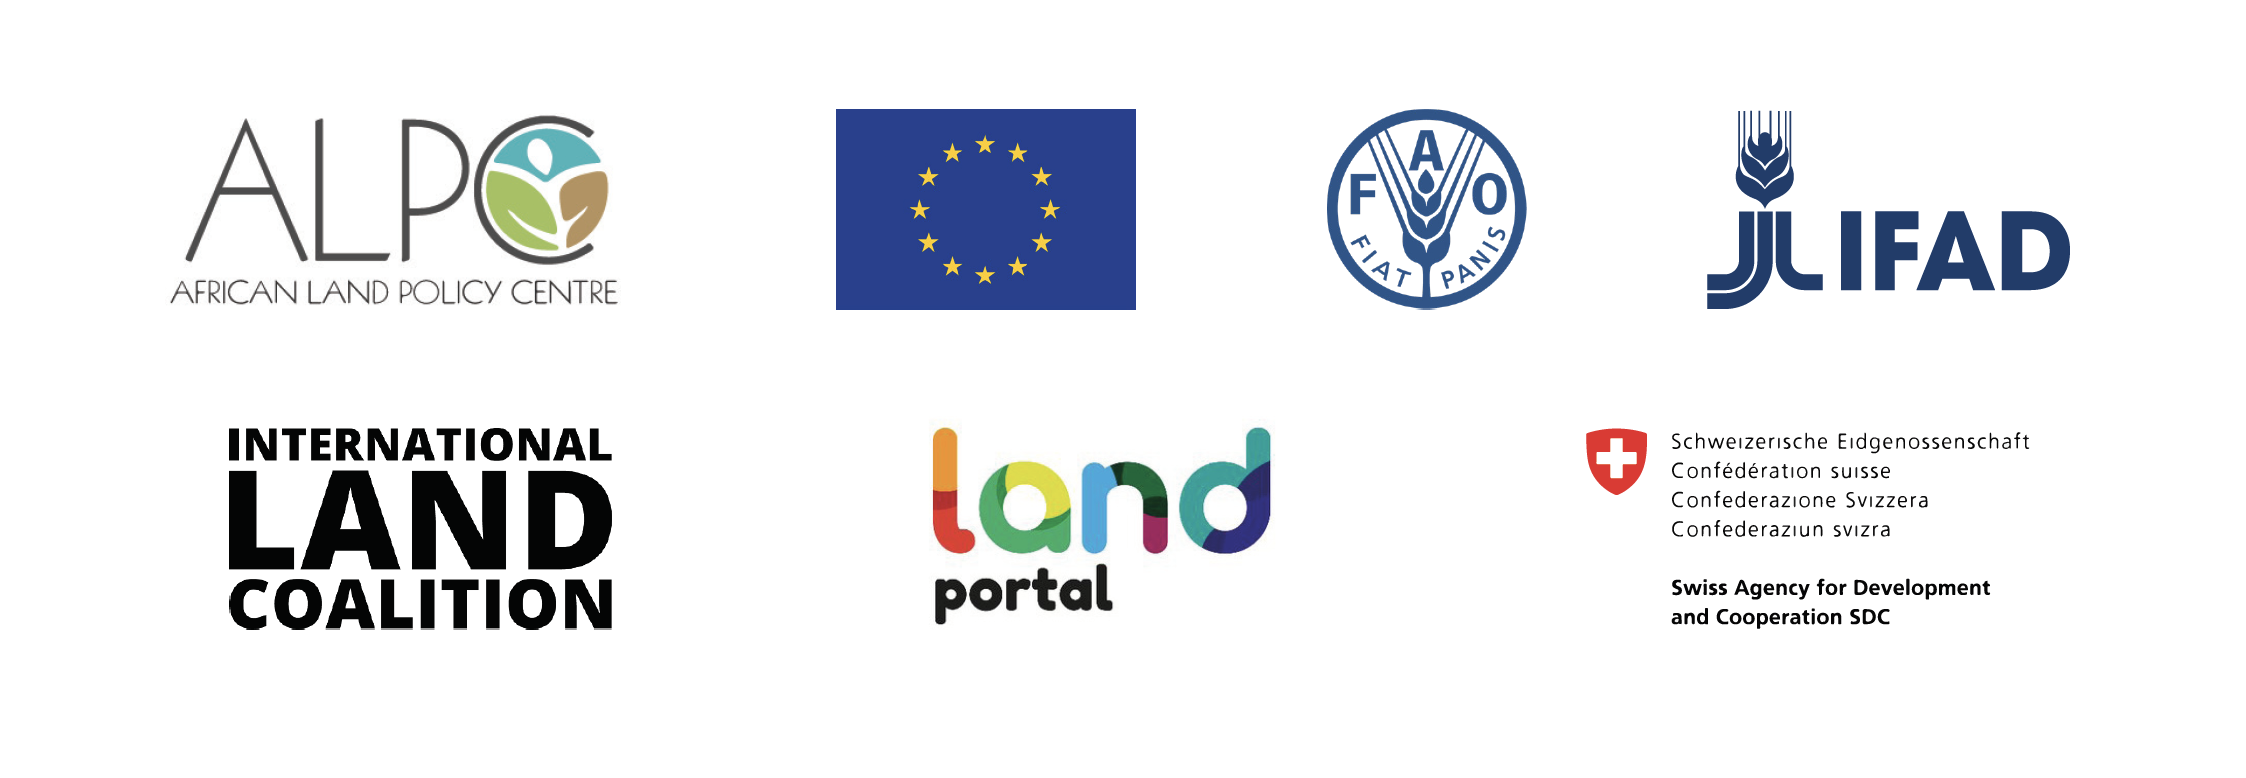 9th Capitalization Meeting of the EU Land Governance Programme - Day 3 - WEBINAR ON COVID-19 AND TENURE SECURITY